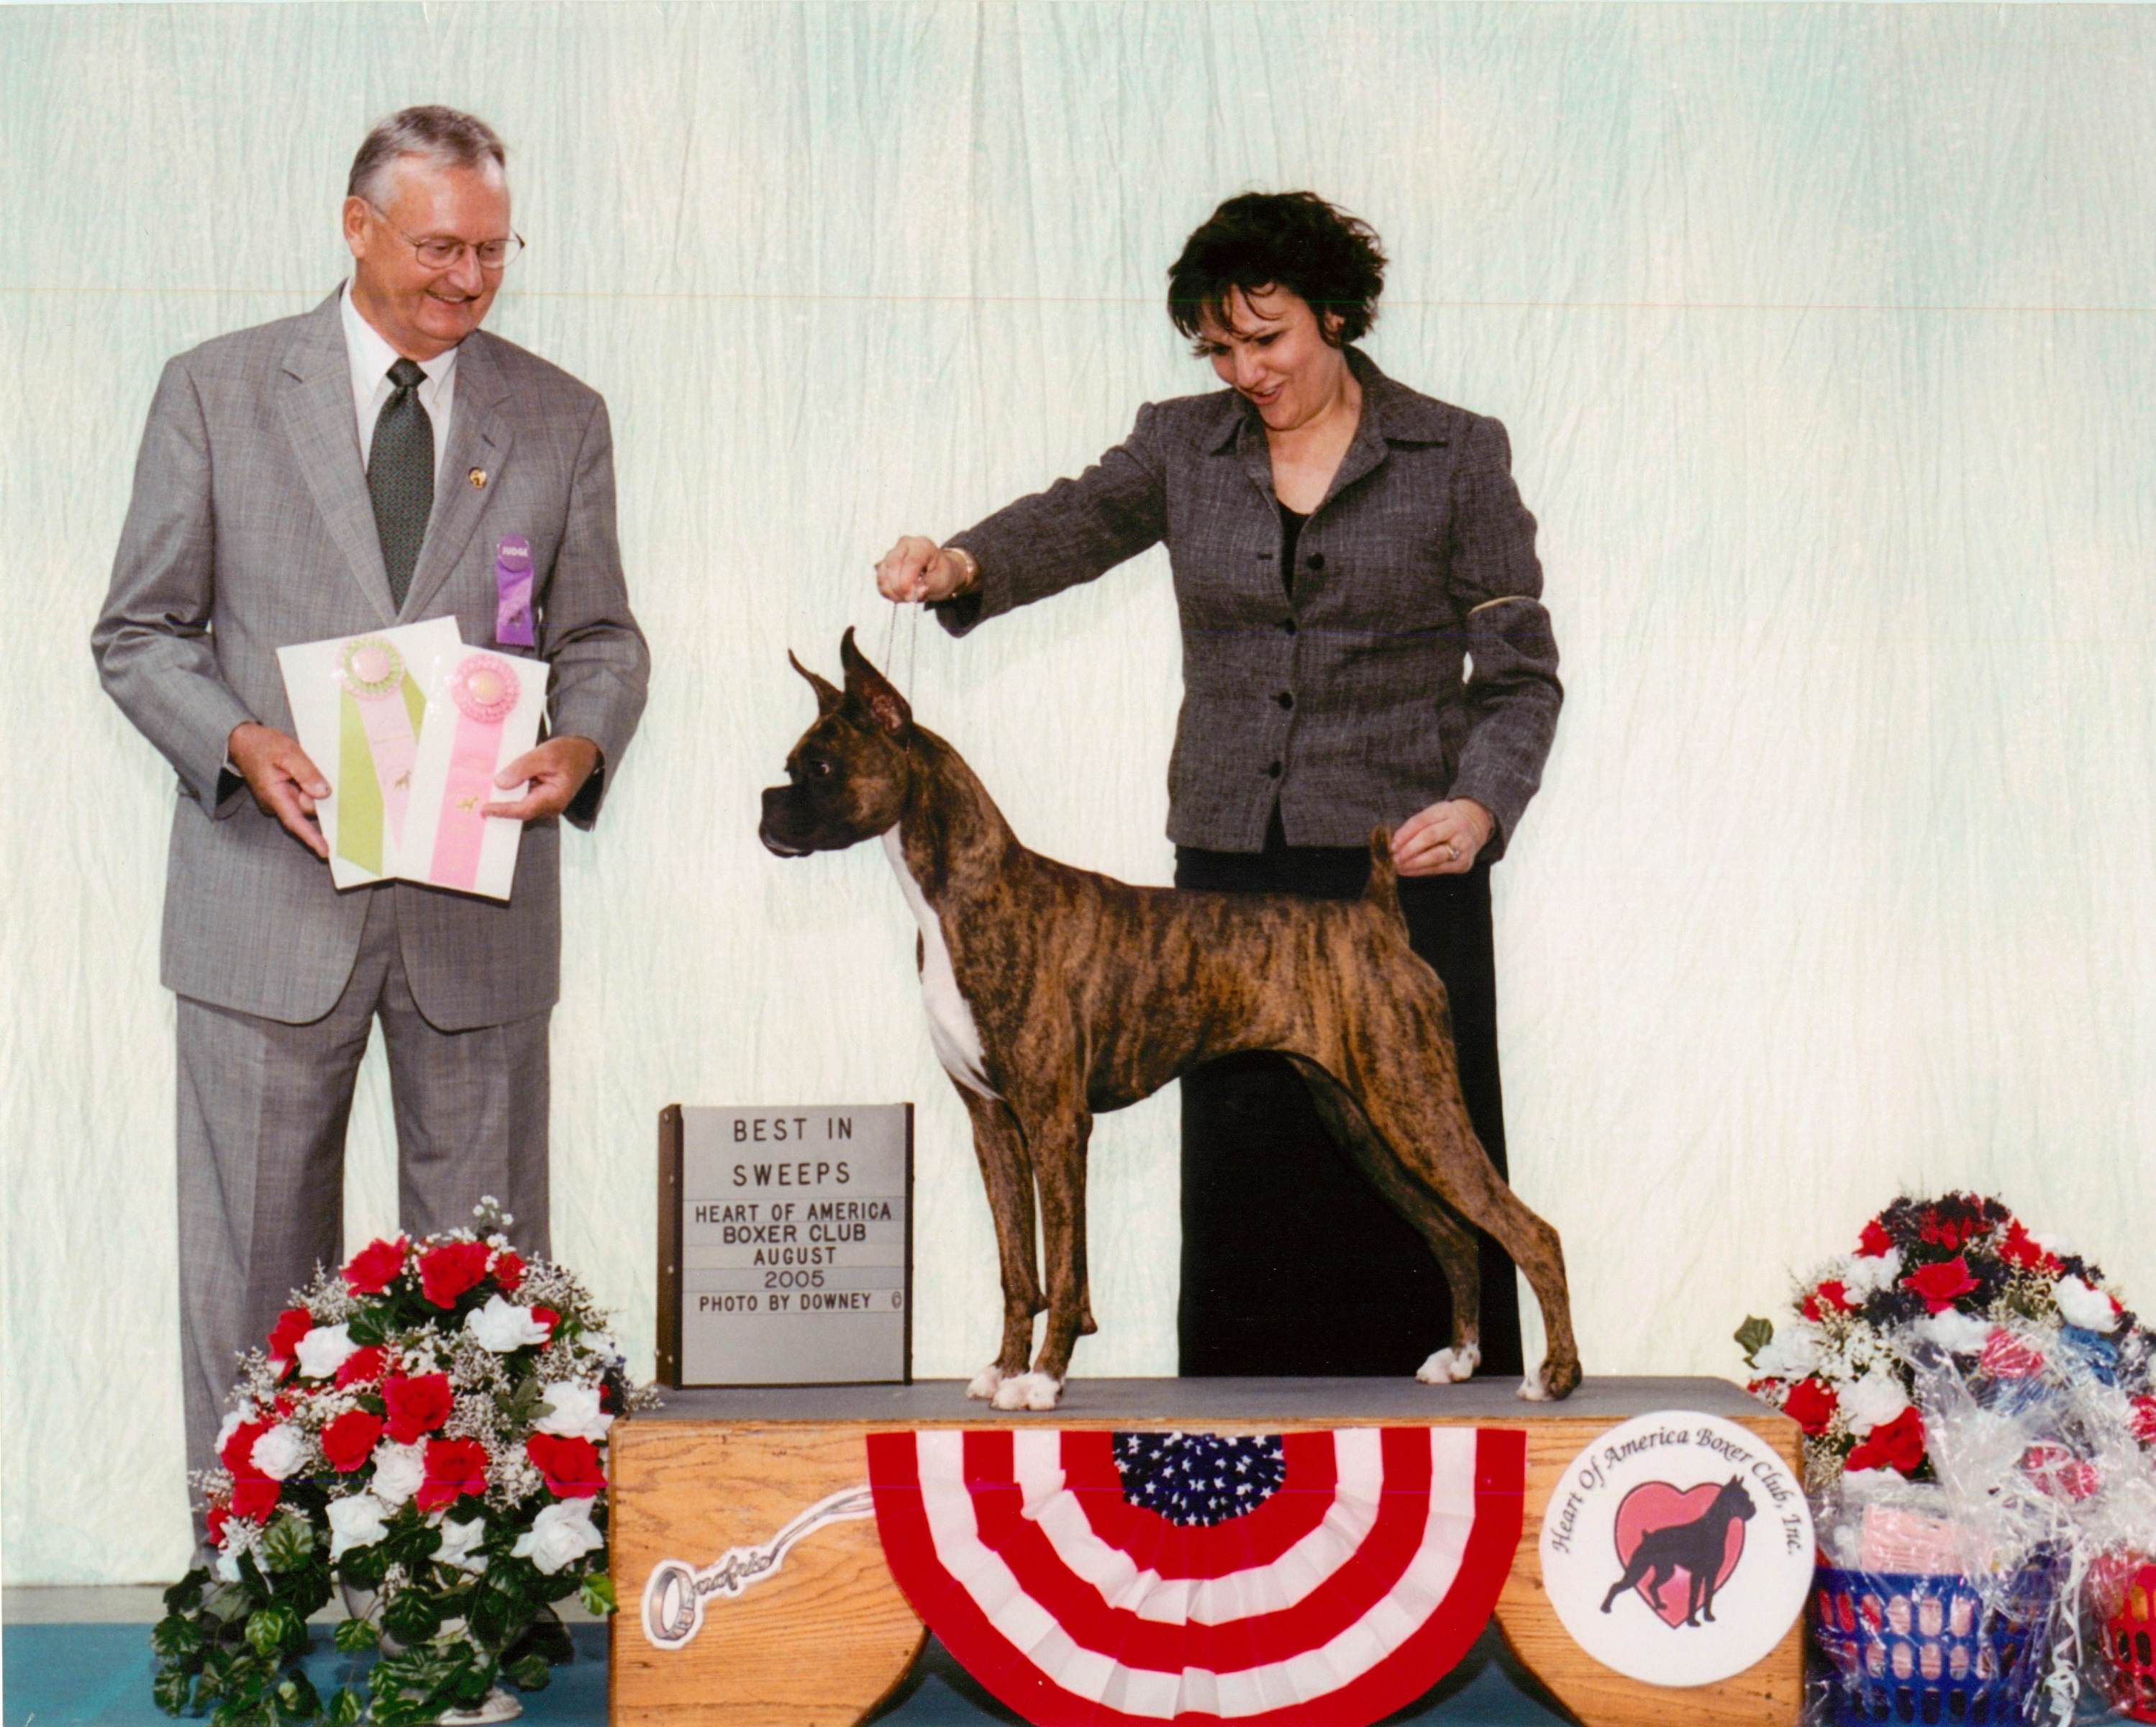 Grand Sweepstakes & Best Puppy @ 2005 Specialty Show #1